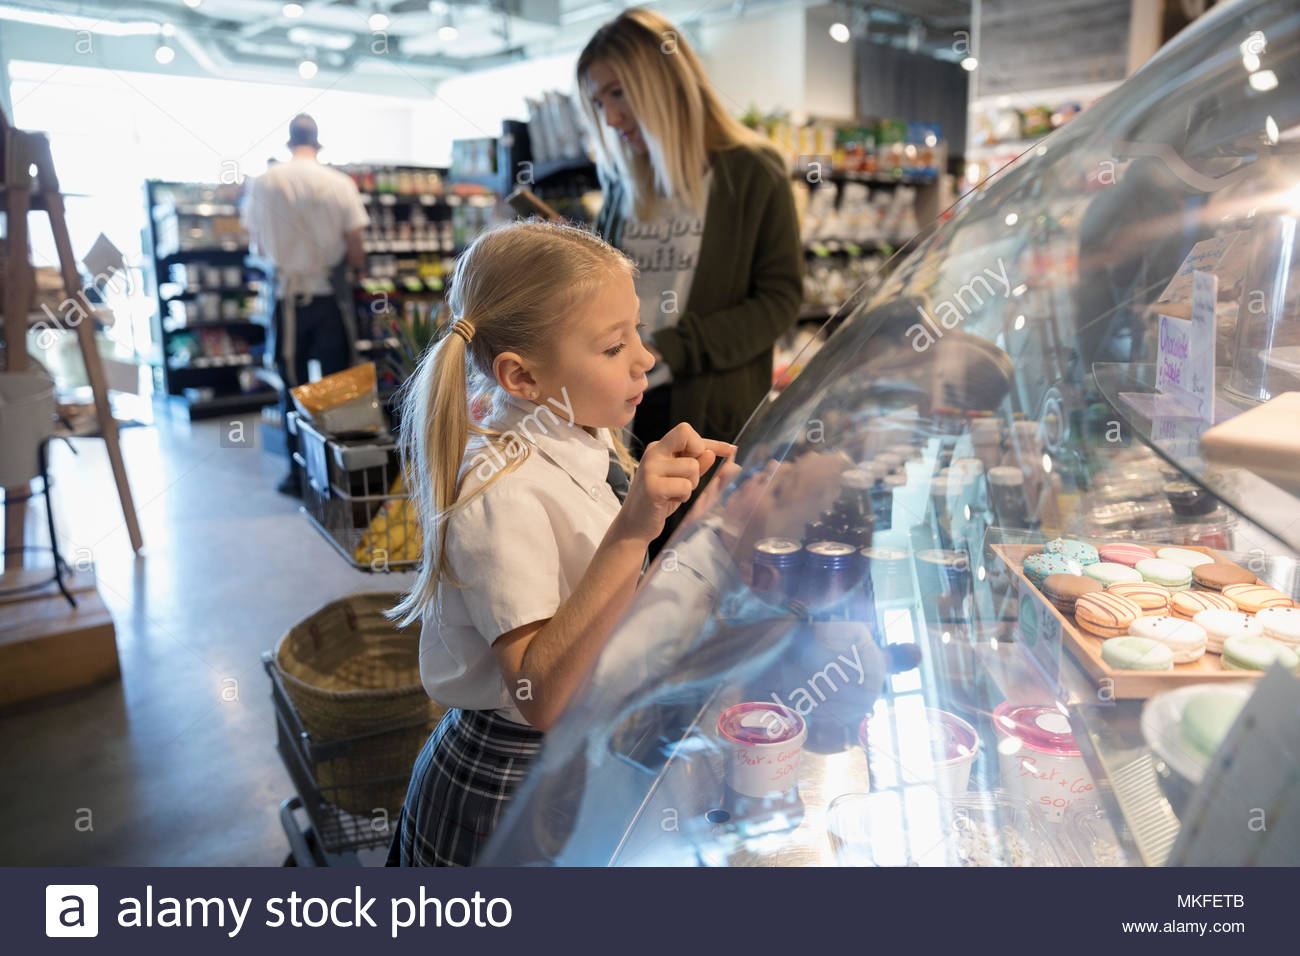 Curious girl browsing desserts in bakery display case in market - Stock Image